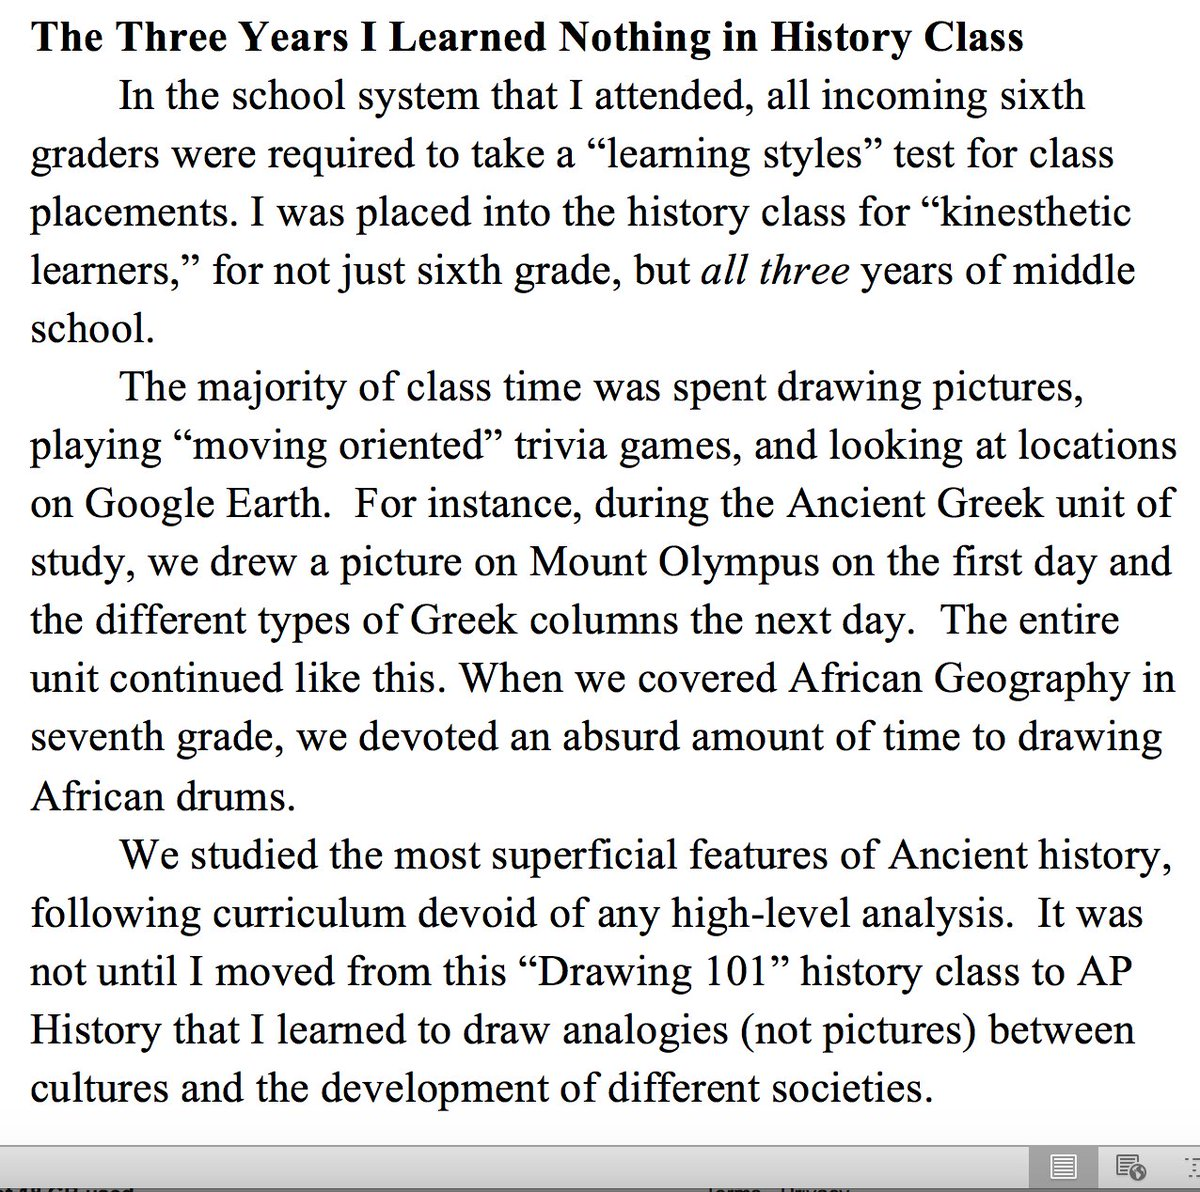 English Composition Essay Learning Styles Do Real Damage To Learning One Of My Students Wrote An Essay  About Learning History By Drawing And Moving Around For Three Years After   Pollution Essay In English also Essay On Healthcare Nate Kornell On Twitter Learning Styles Do Real Damage To Learning  Thesis Statement For Persuasive Essay